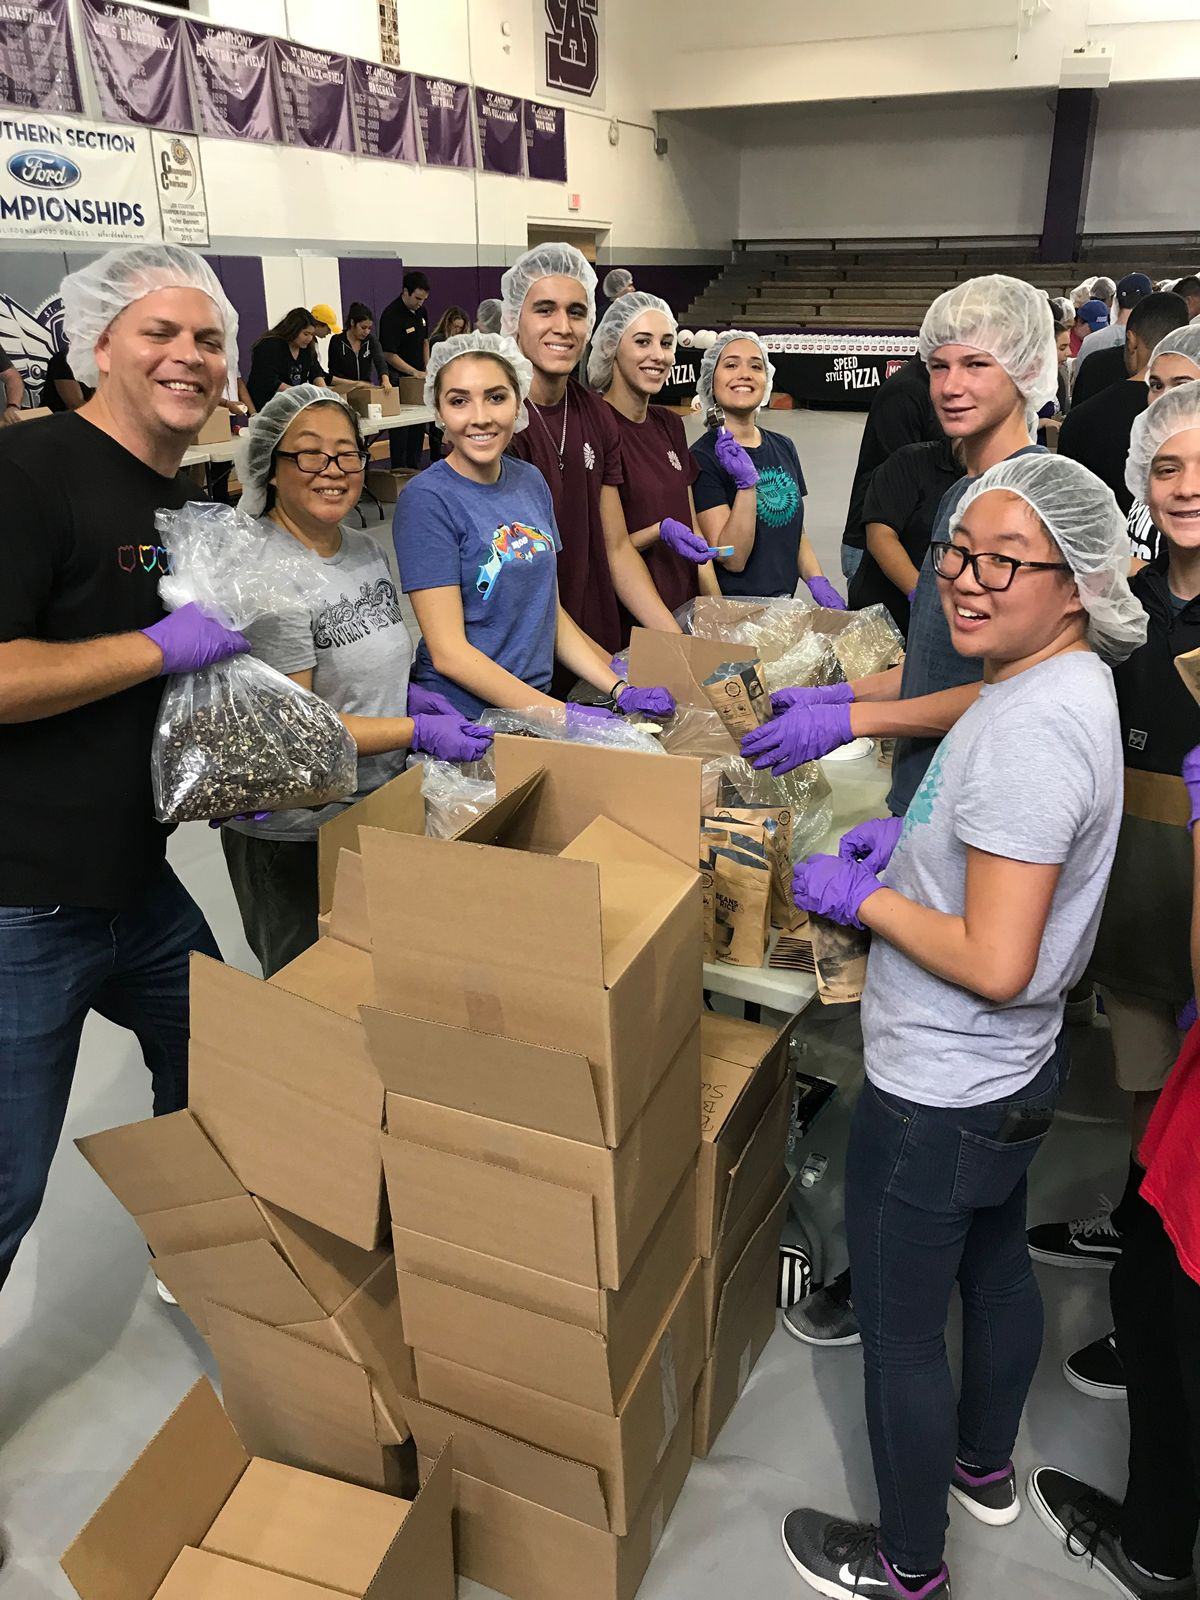 MOD Pizza and Franchisees Raise over $400,000 to Feed Hungry Kids